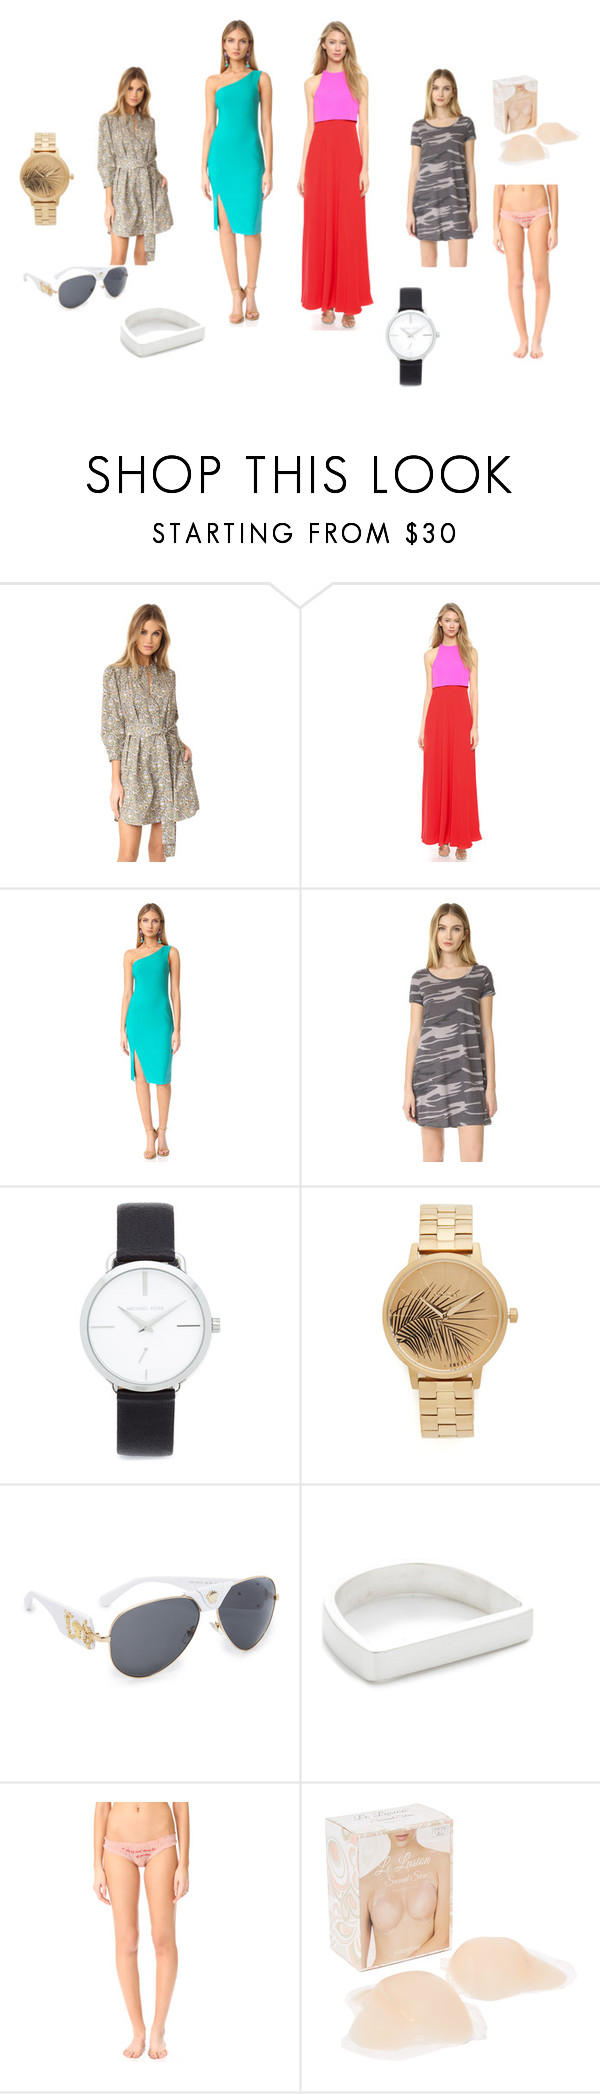 """""""Dress Well, Keep It Simple..!!"""" by yagna ❤ liked on Polyvore featuring Rebecca Taylor, Jill by Jill Stuart, Likely, Z Supply, Michael Kors, Nixon, Versace, Maya Magal, LoveStories and Fashion Forms"""